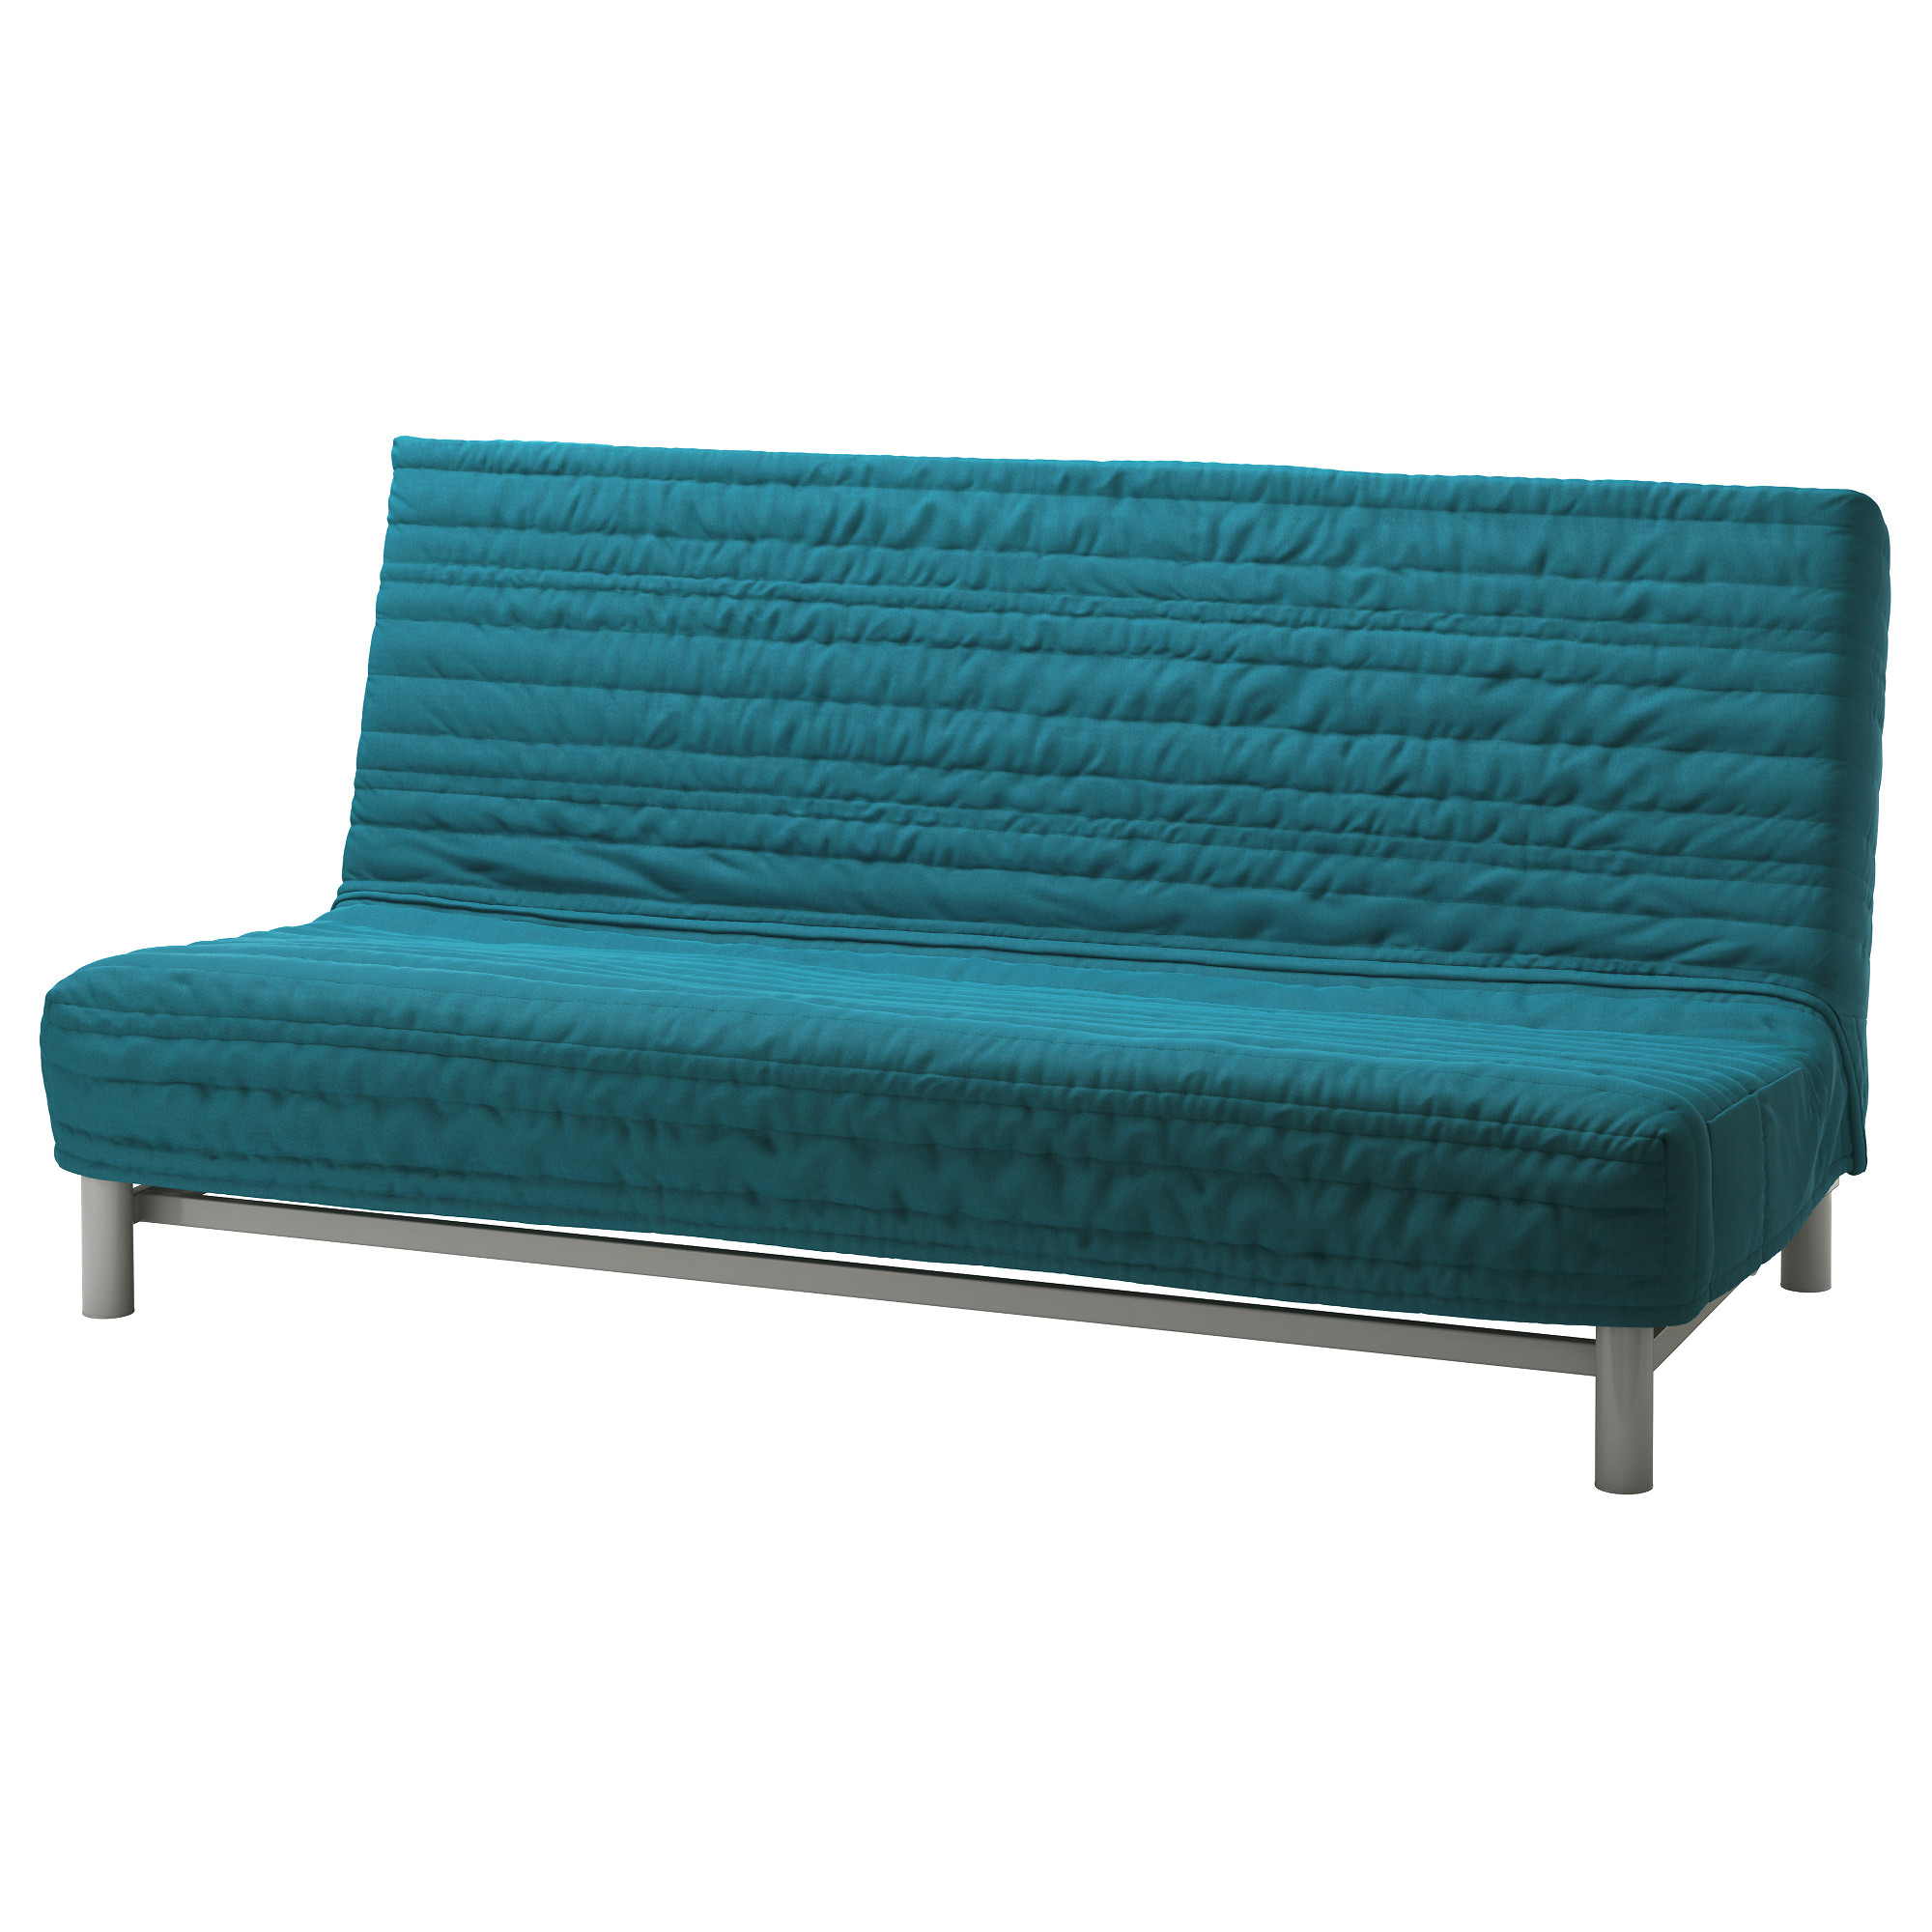 Moheda Sofa Bed   Leather Pull Out Couch   Ikea Sofabed